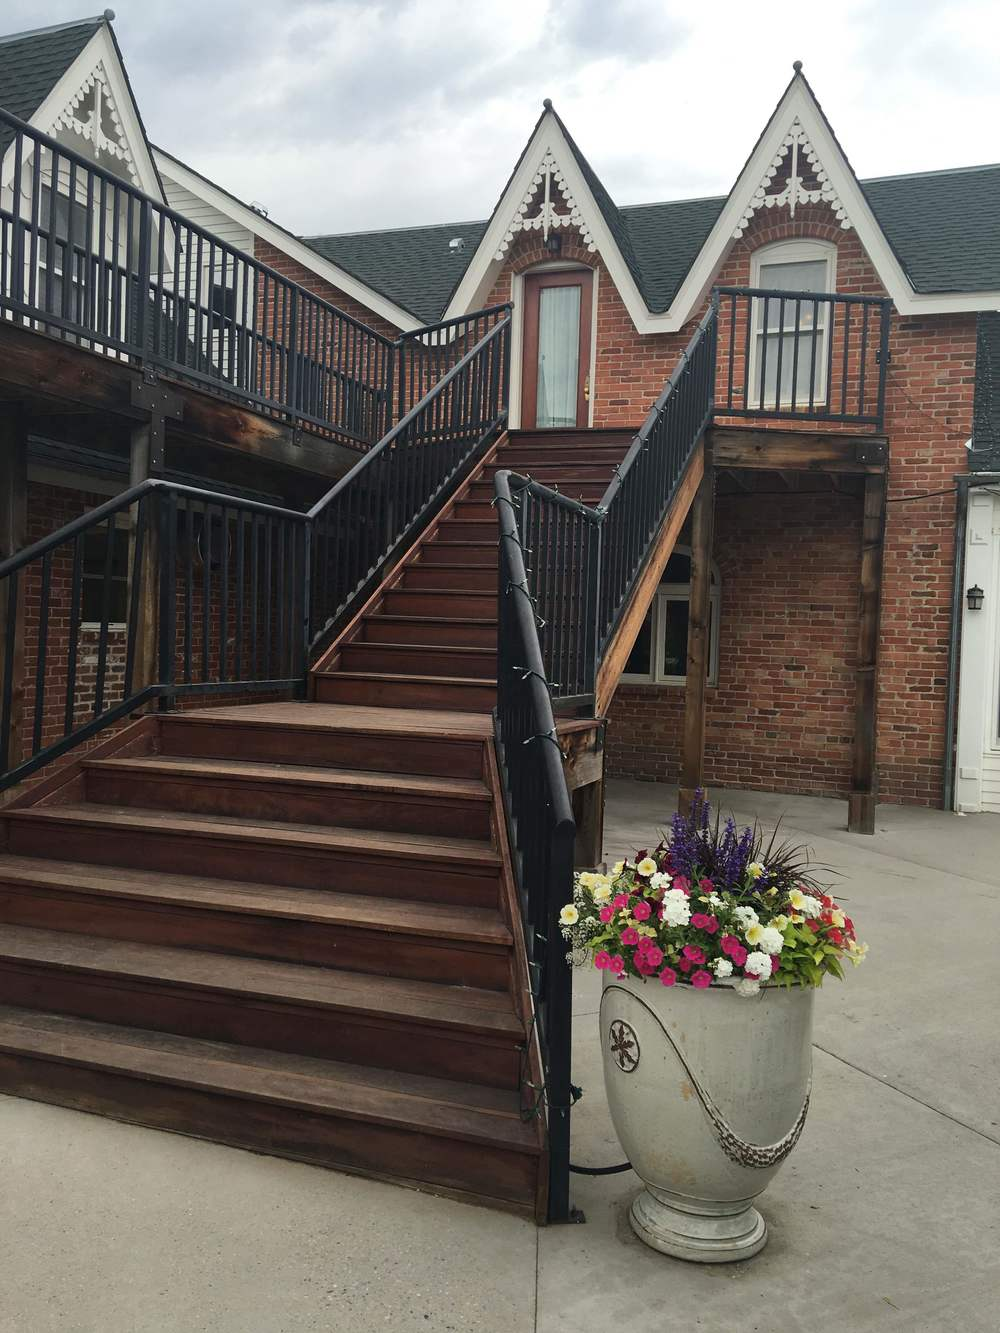 This is the grand entrance stairway.